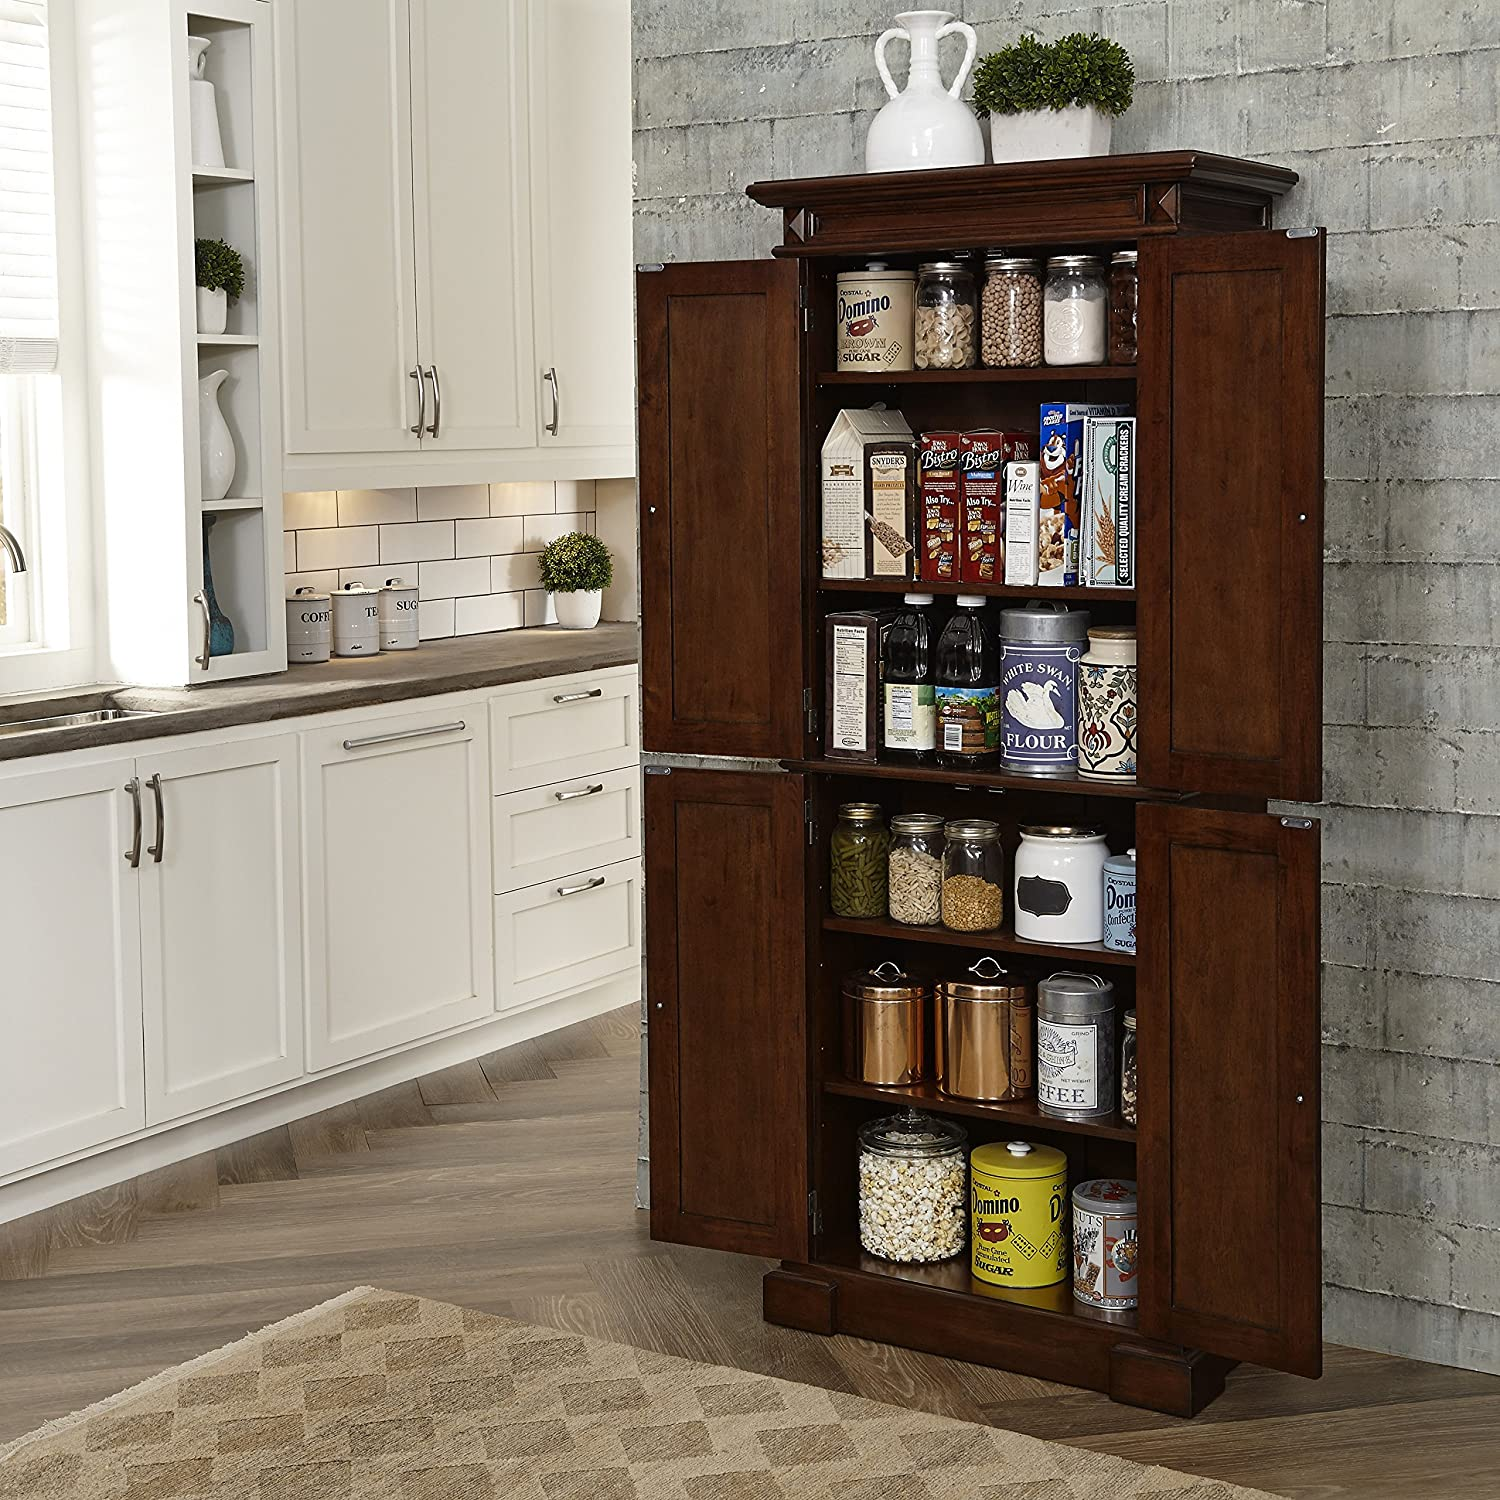 Amazon.com: Home Styles 5005 69 Americana Kitchen Pantry, Cherry Finish:  Kitchen U0026 Dining